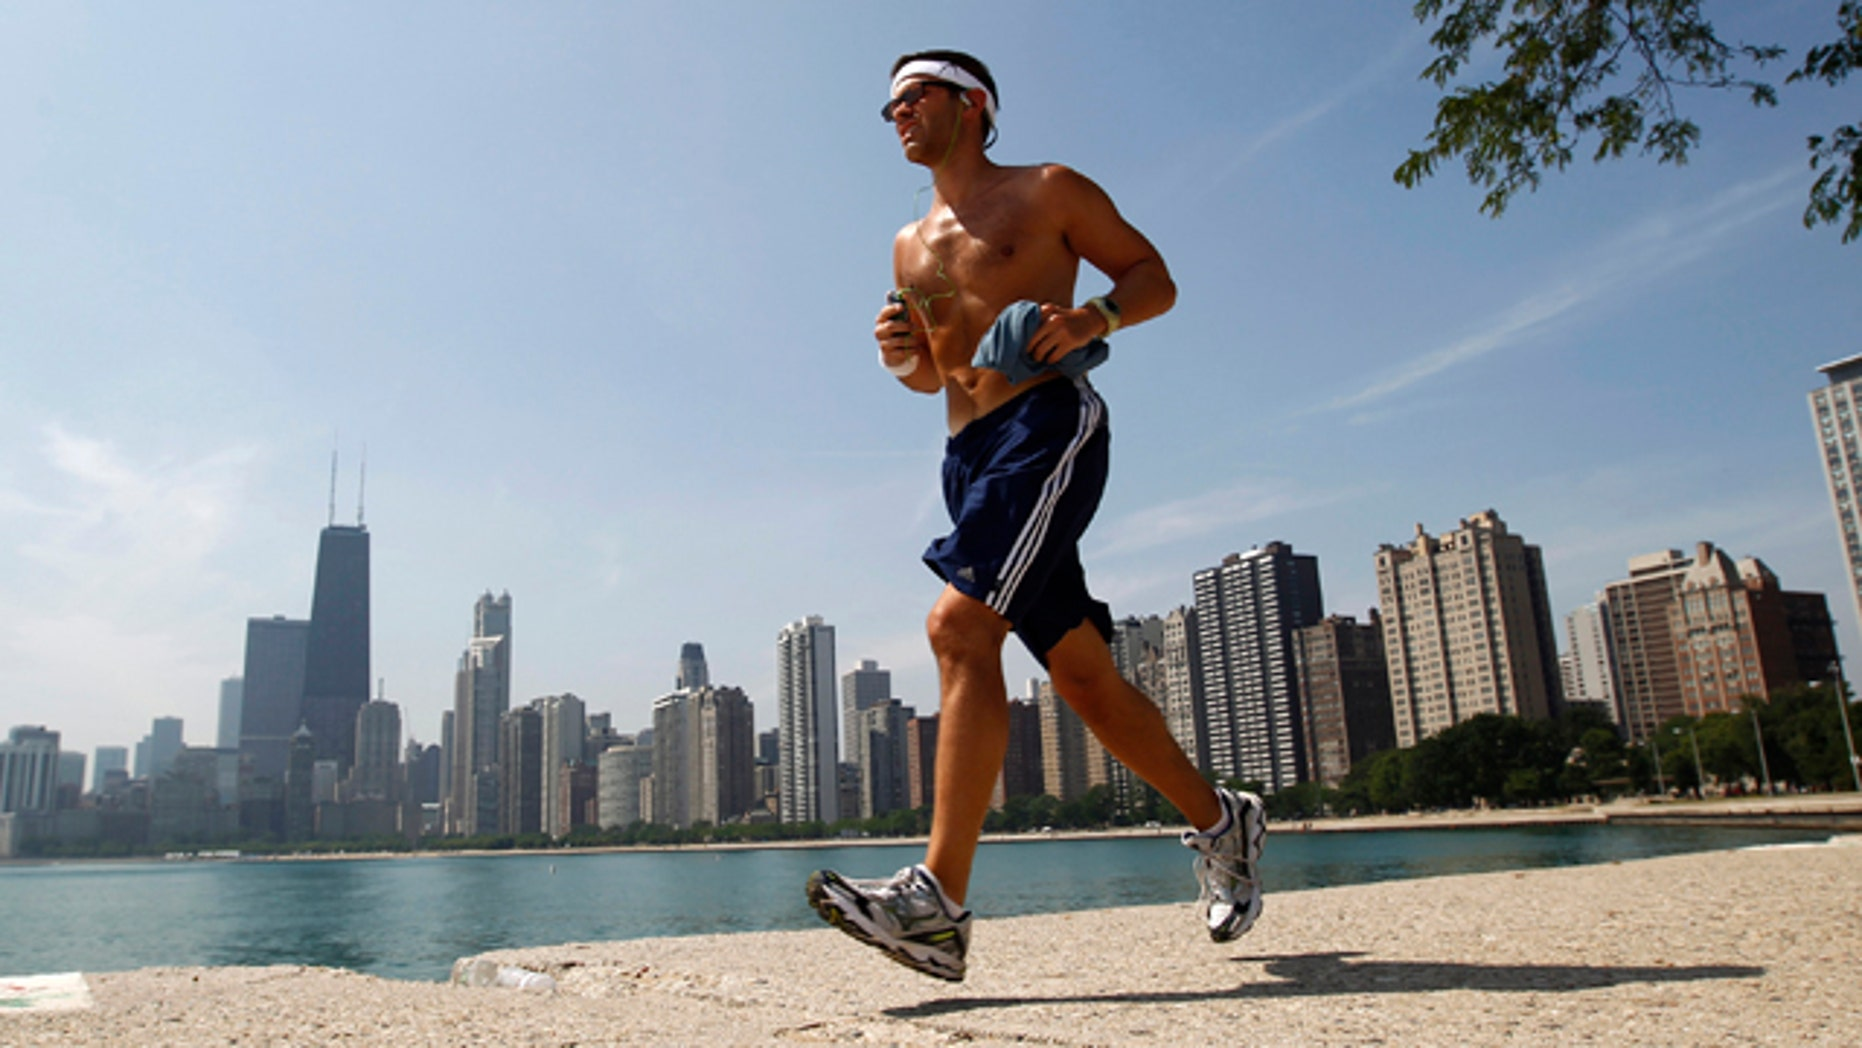 A man runs along the water near North Avenue Beach in Chicago July 20, 2011. The heat index is expected to exceed 110 degrees Fahrenheit or 43 degrees Celsius. REUTERS/Jim Young (UNITED STATES - Tags: ENVIRONMENT)